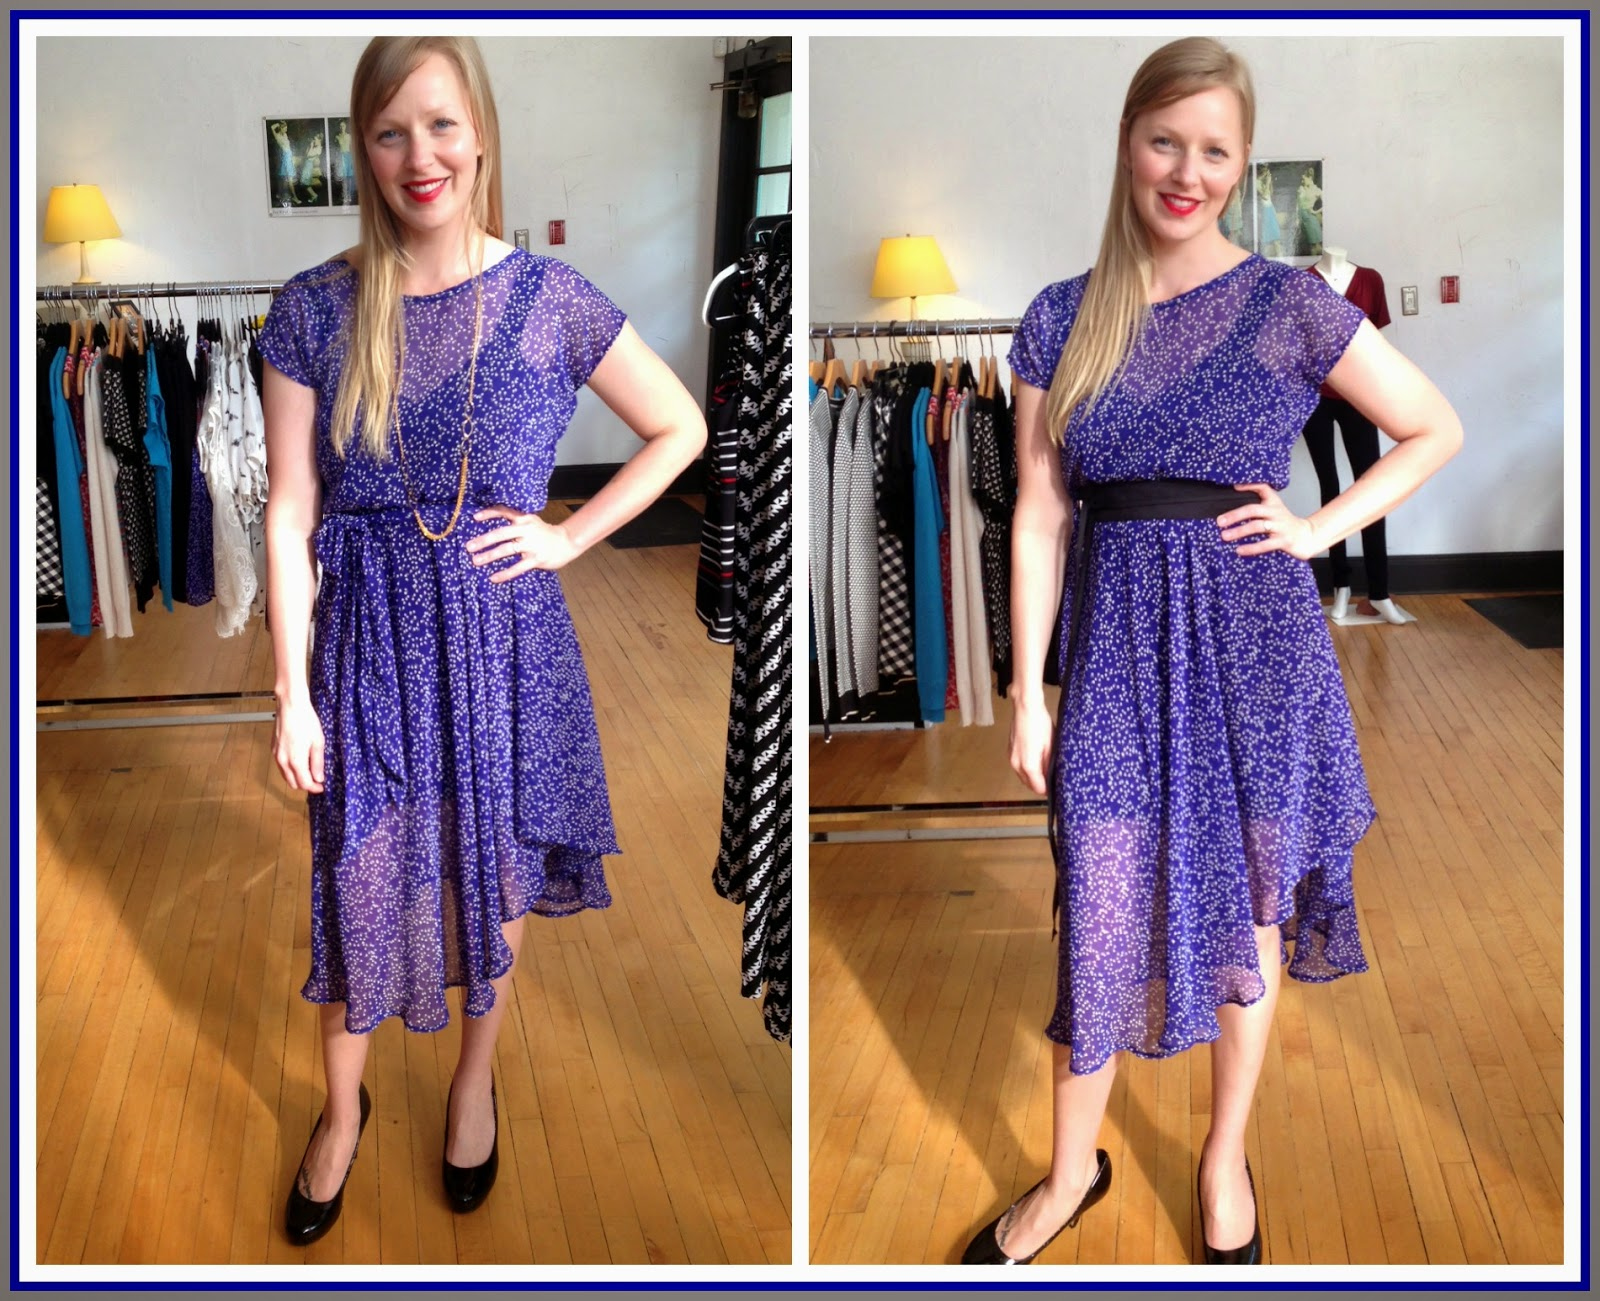 Nora by Sarah Bibb ($190) in blue floral, Ava slip ($65-$72) by Sarah Bibb, Obi belt ($40) by Sarah Bibb at Folly